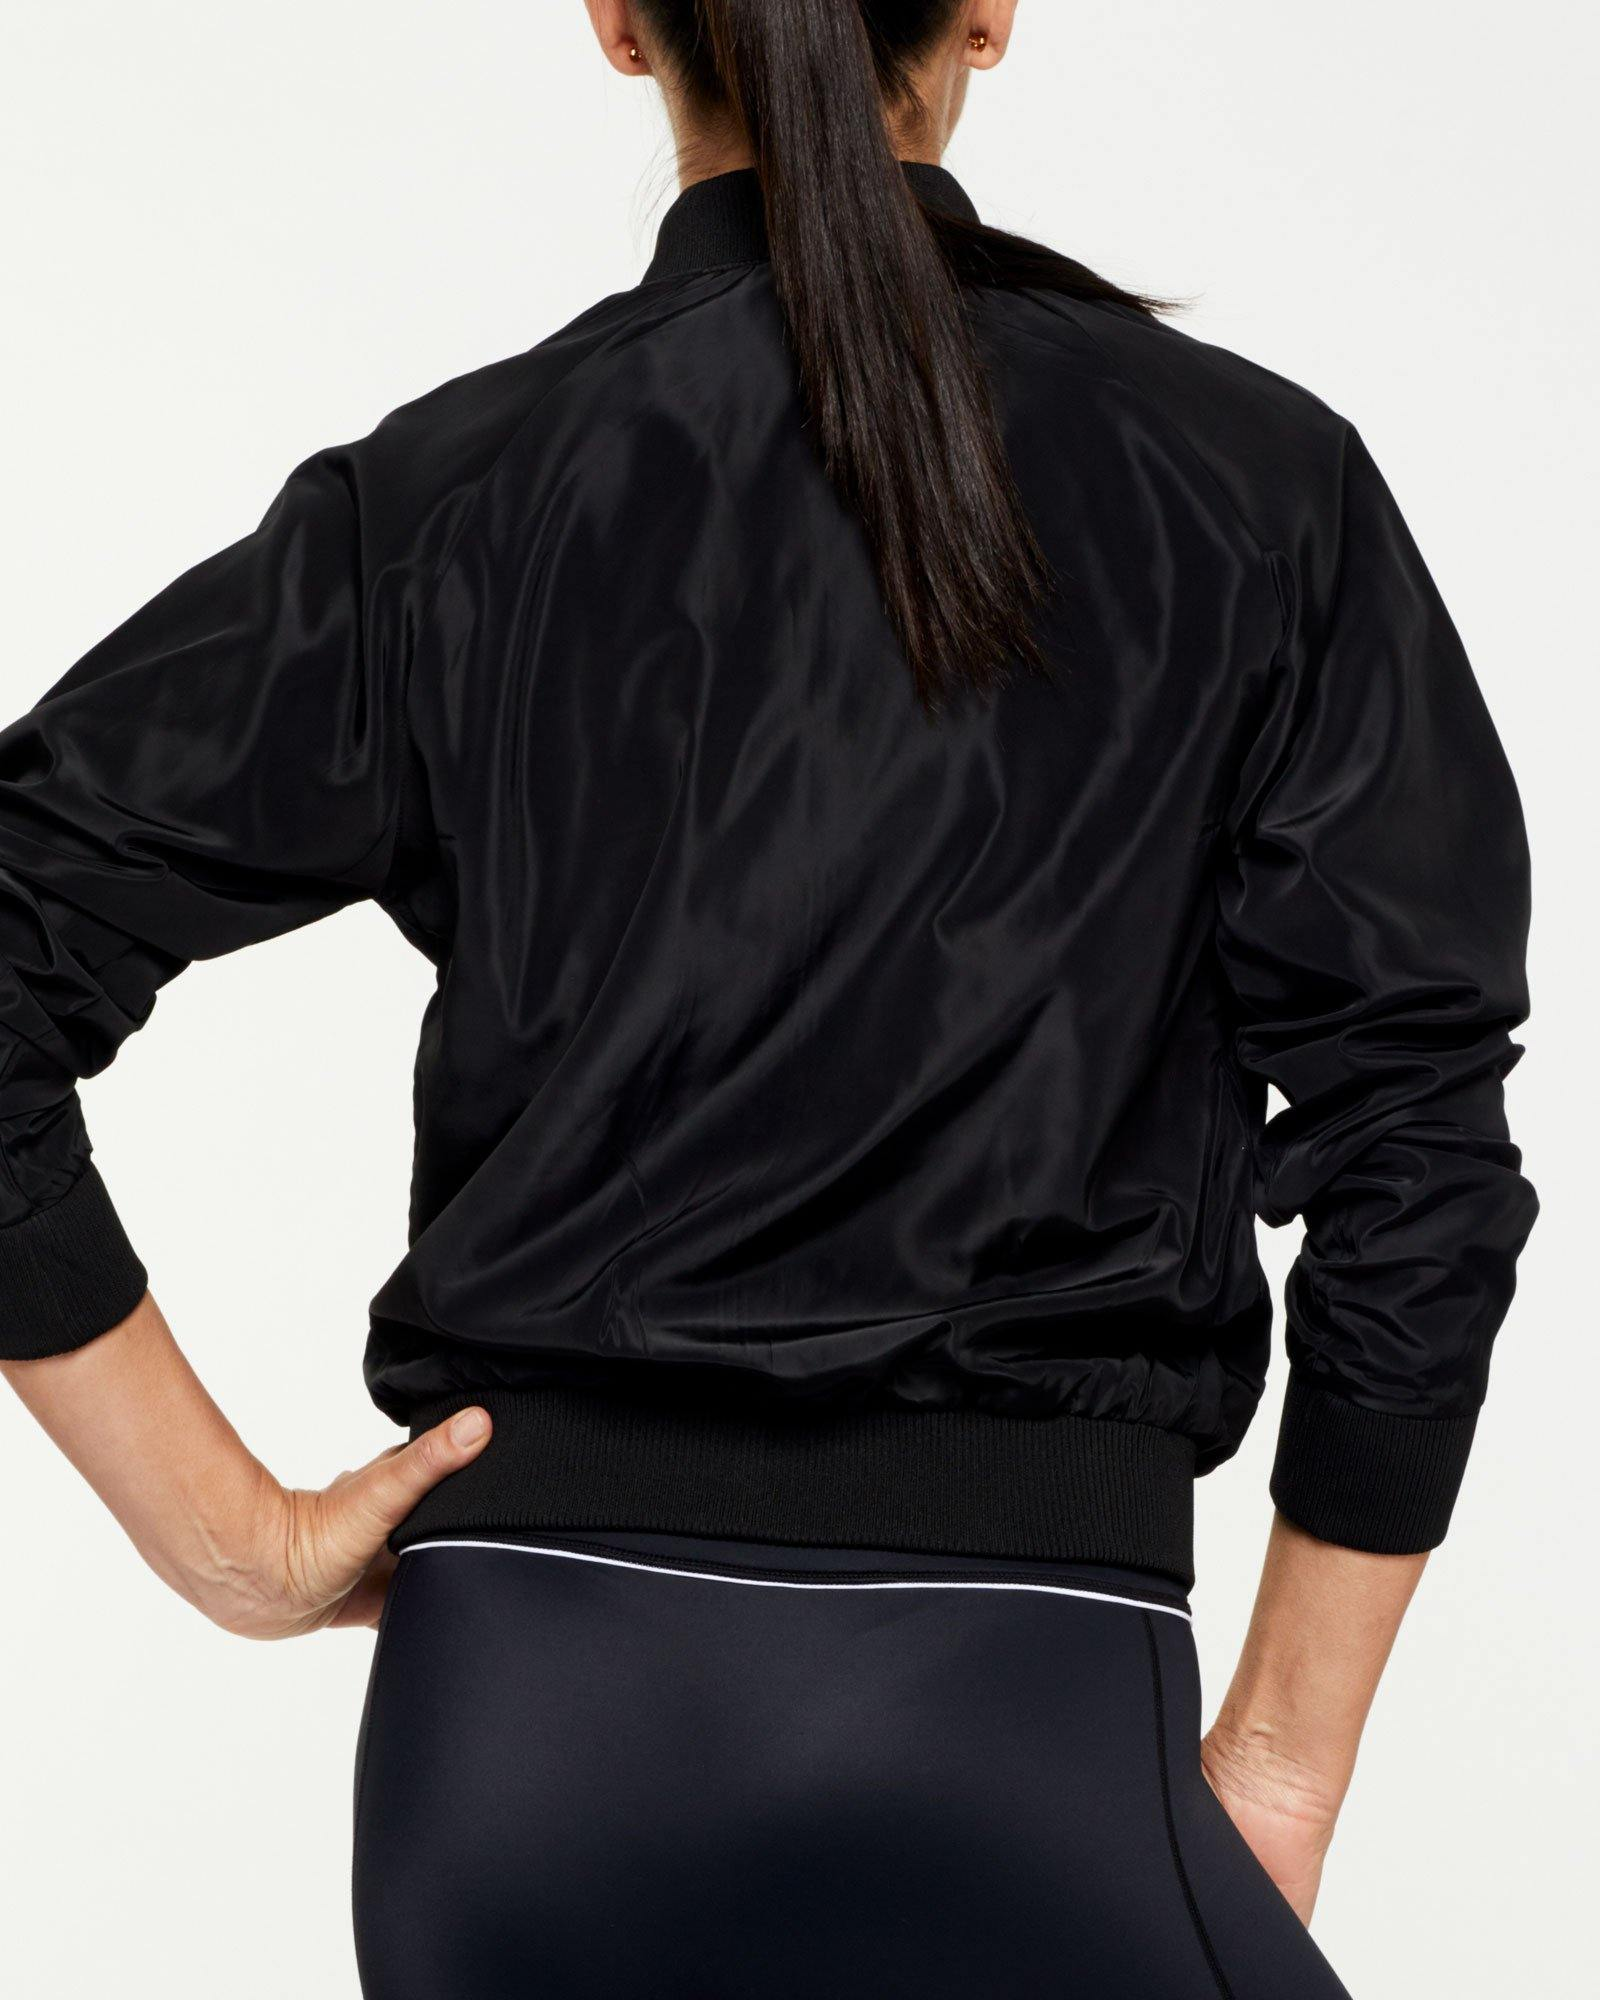 COMPANION PIKE REVERSIBLE JACKET, BLACK OUTER,  WHITE INNER, WORN WITH GRACILIS 7/8 LEGGING AND INFRASPINATUS ACTIVE TOP, BLACK BACK VIEW